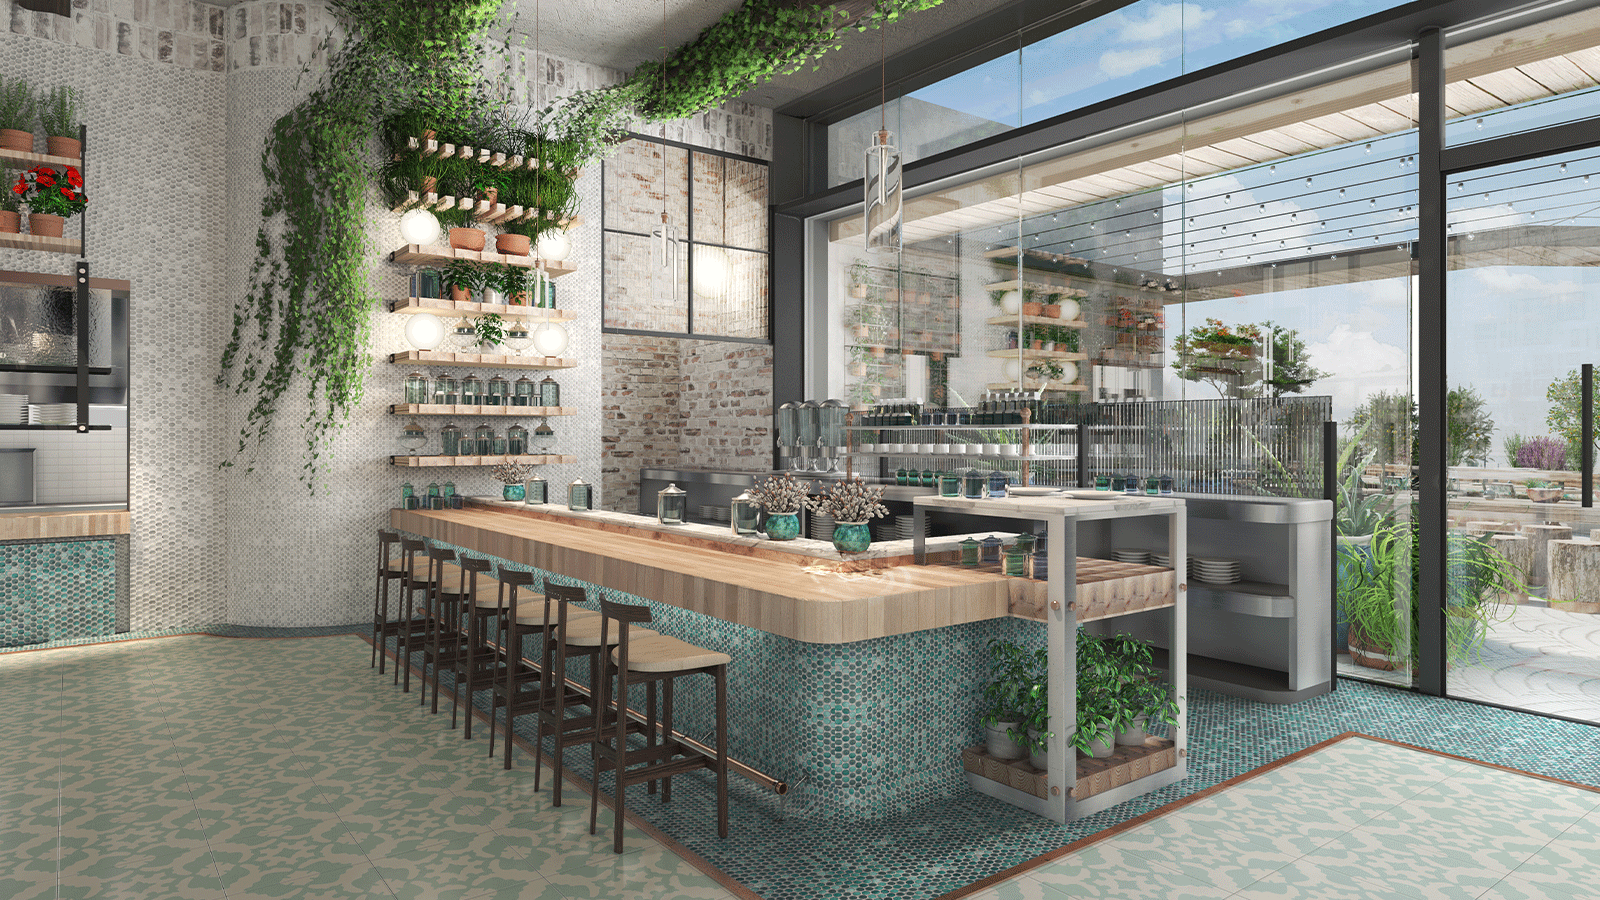 Nation's First Weed Cafe to be Opened shortly in West Hollywood